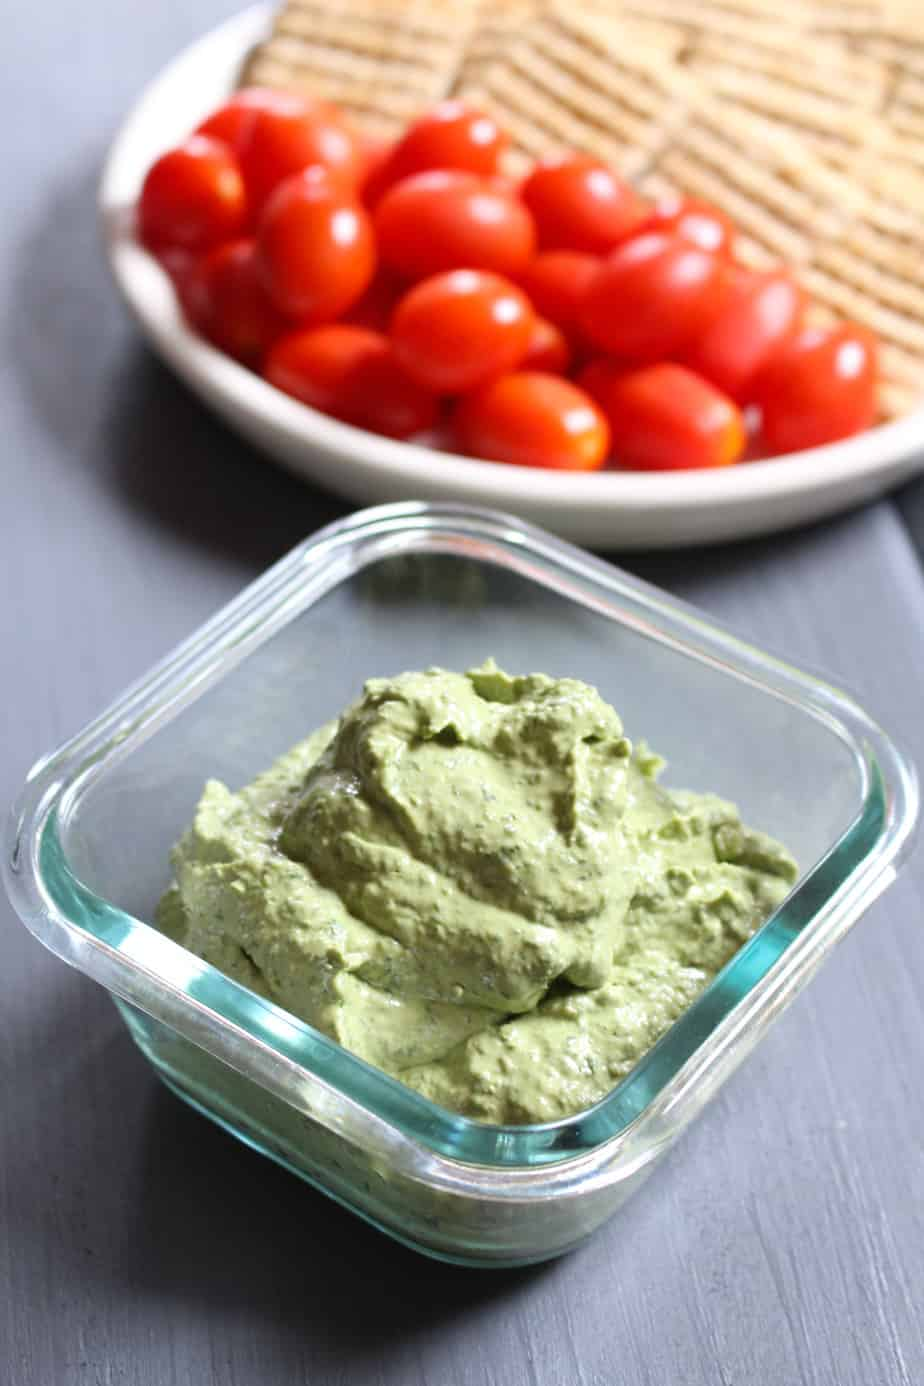 Simple 3-Ingredient Basil Cream Cheese Dip | Frugal Nutrition